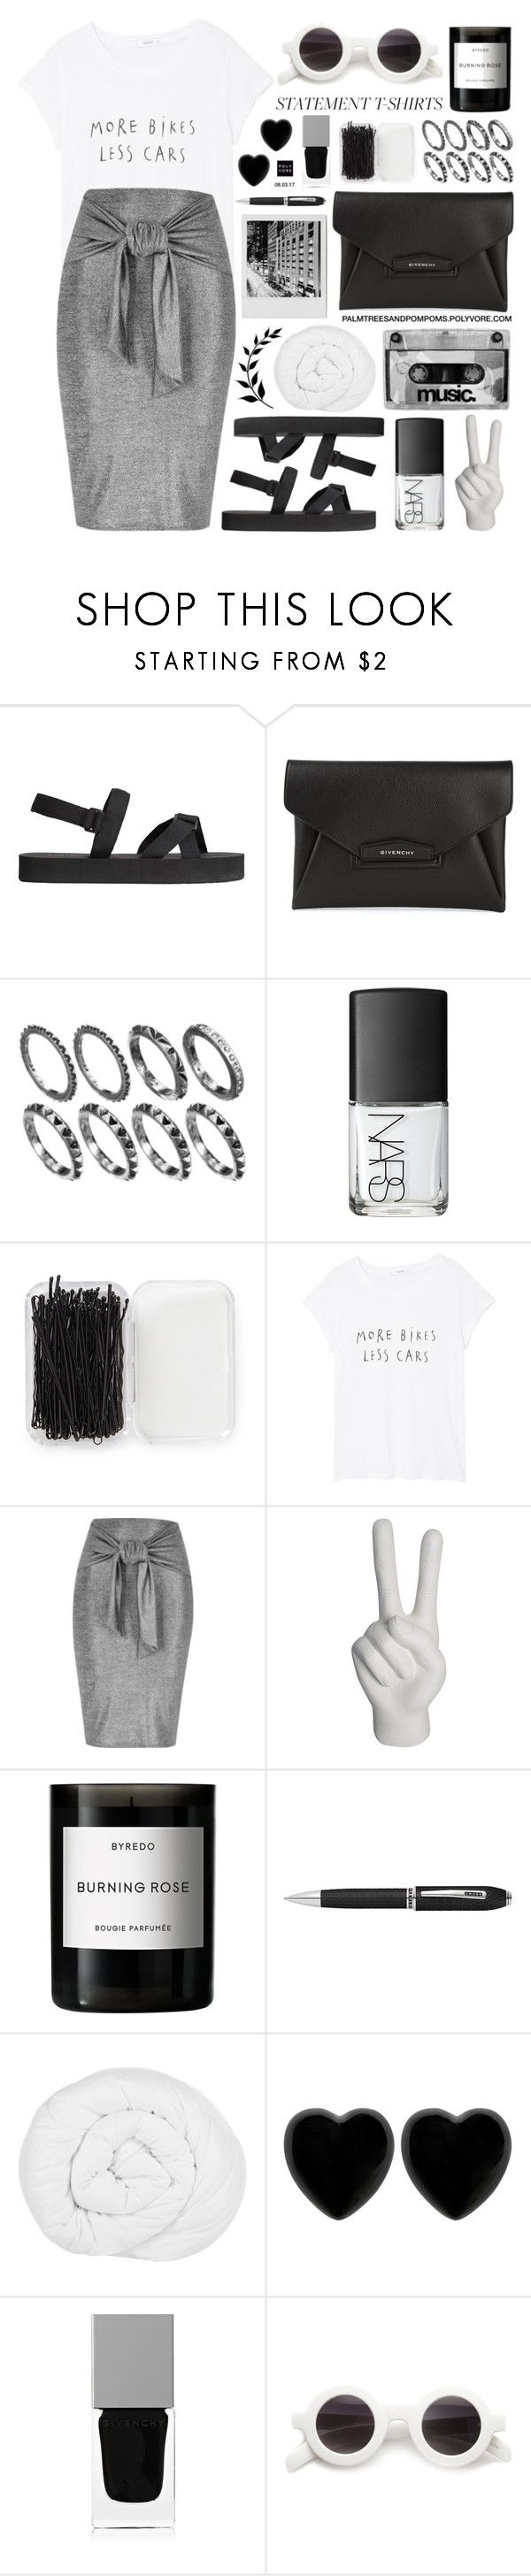 """""""Say What: Statement T-Shirts"""" by palmtreesandpompoms ❤ liked on Polyvore featuring H&M, Givenchy, NARS Cosmetics, Forever 21, MANGO, River Island, Noir, Byredo, The Fine Bedding Company and Dollydagger"""